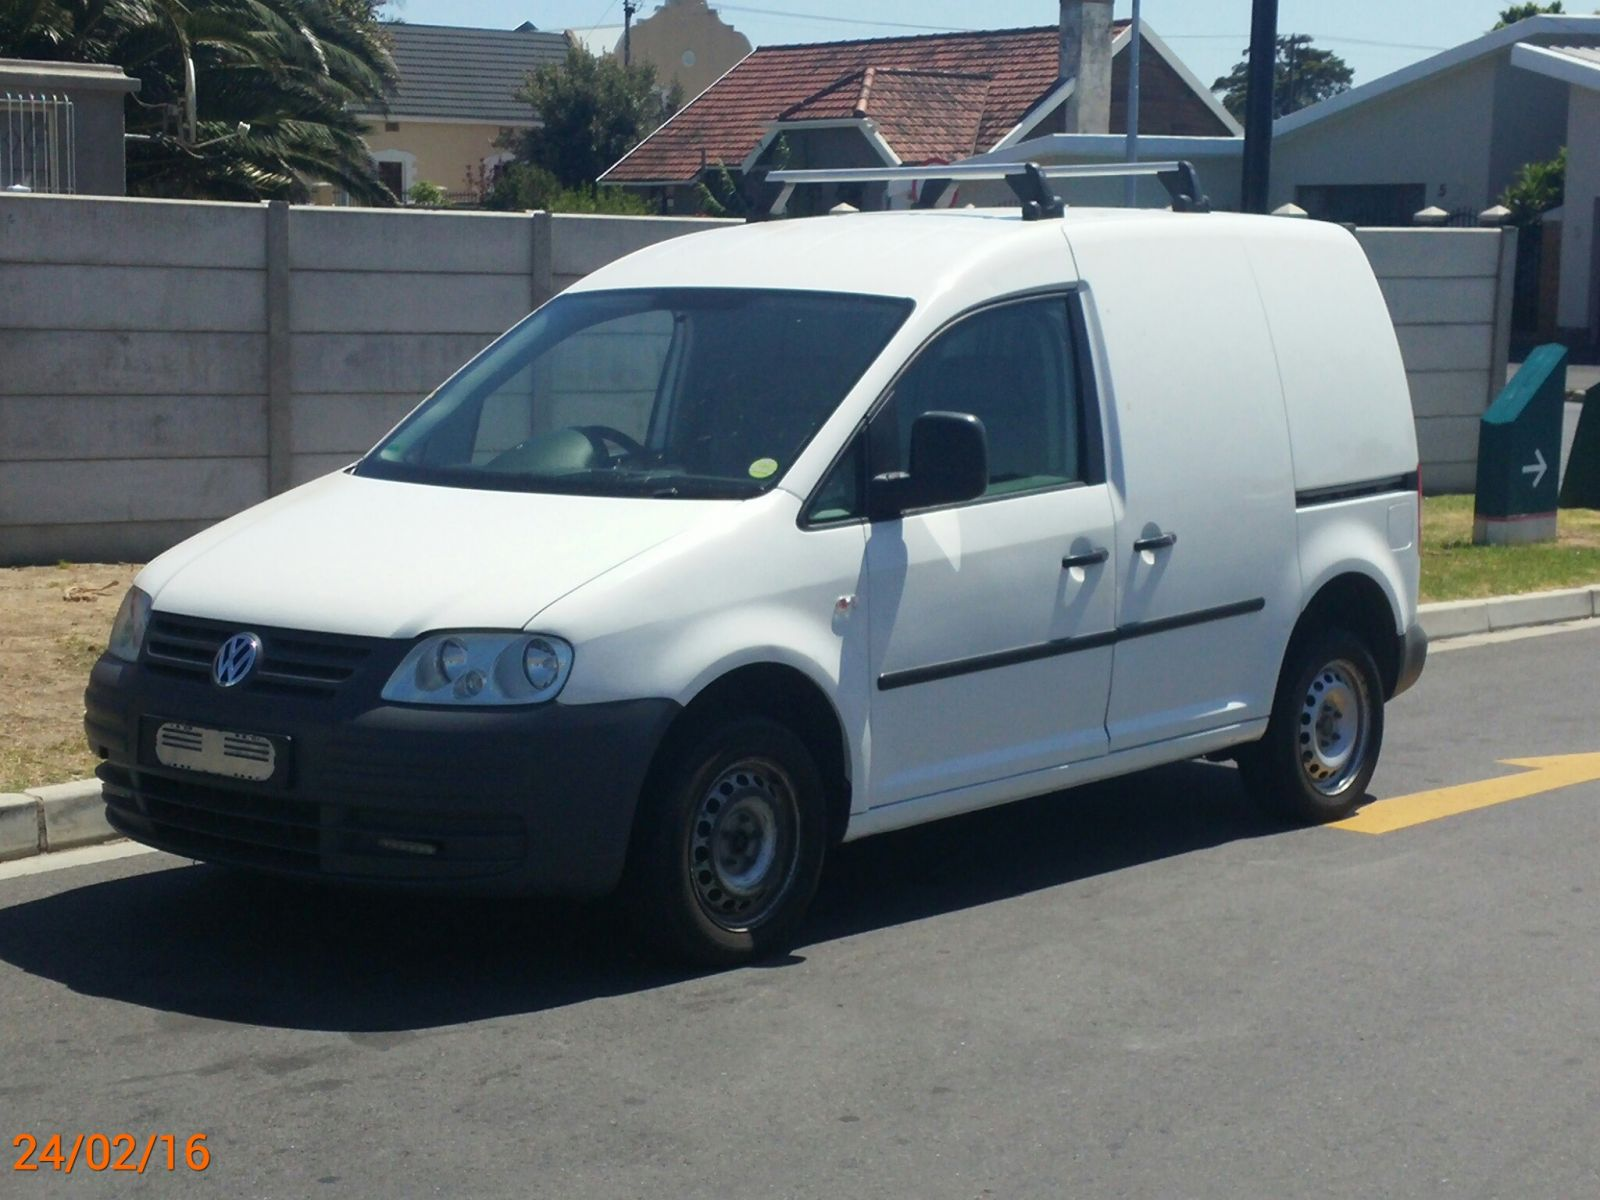 Autonet Helderberg CADDY PANEL VAN CADDY 1.6i F/C P/V